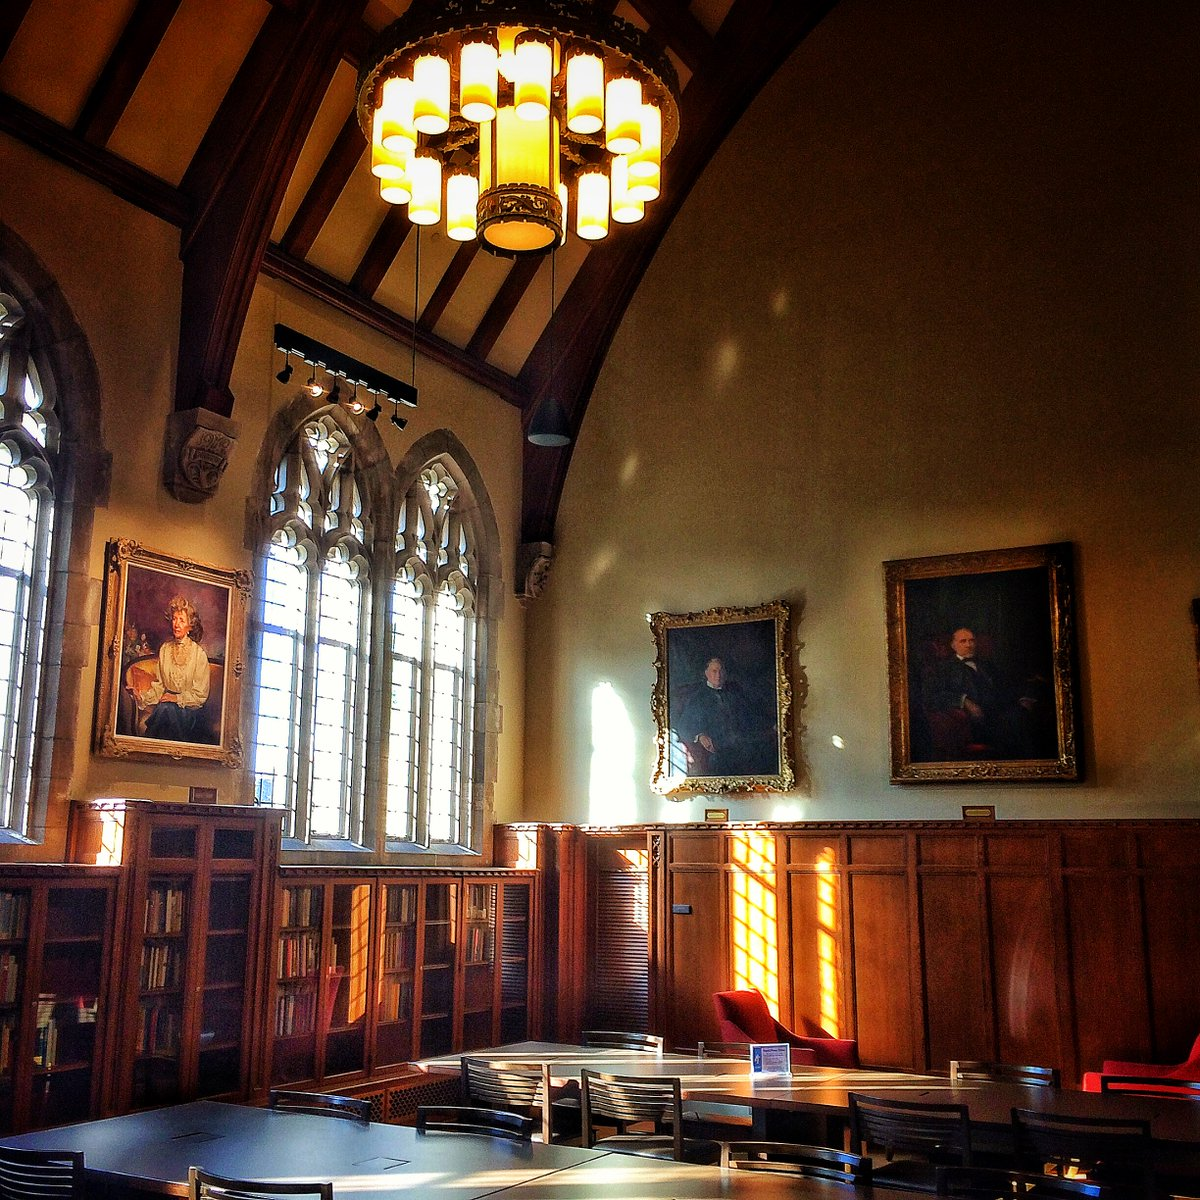 RT @WorkingatDuke: There are many enchanting spots at @DukeU, but the Gothic Reading Room in @rubensteinlib is hard to top. https://t.co/vy…